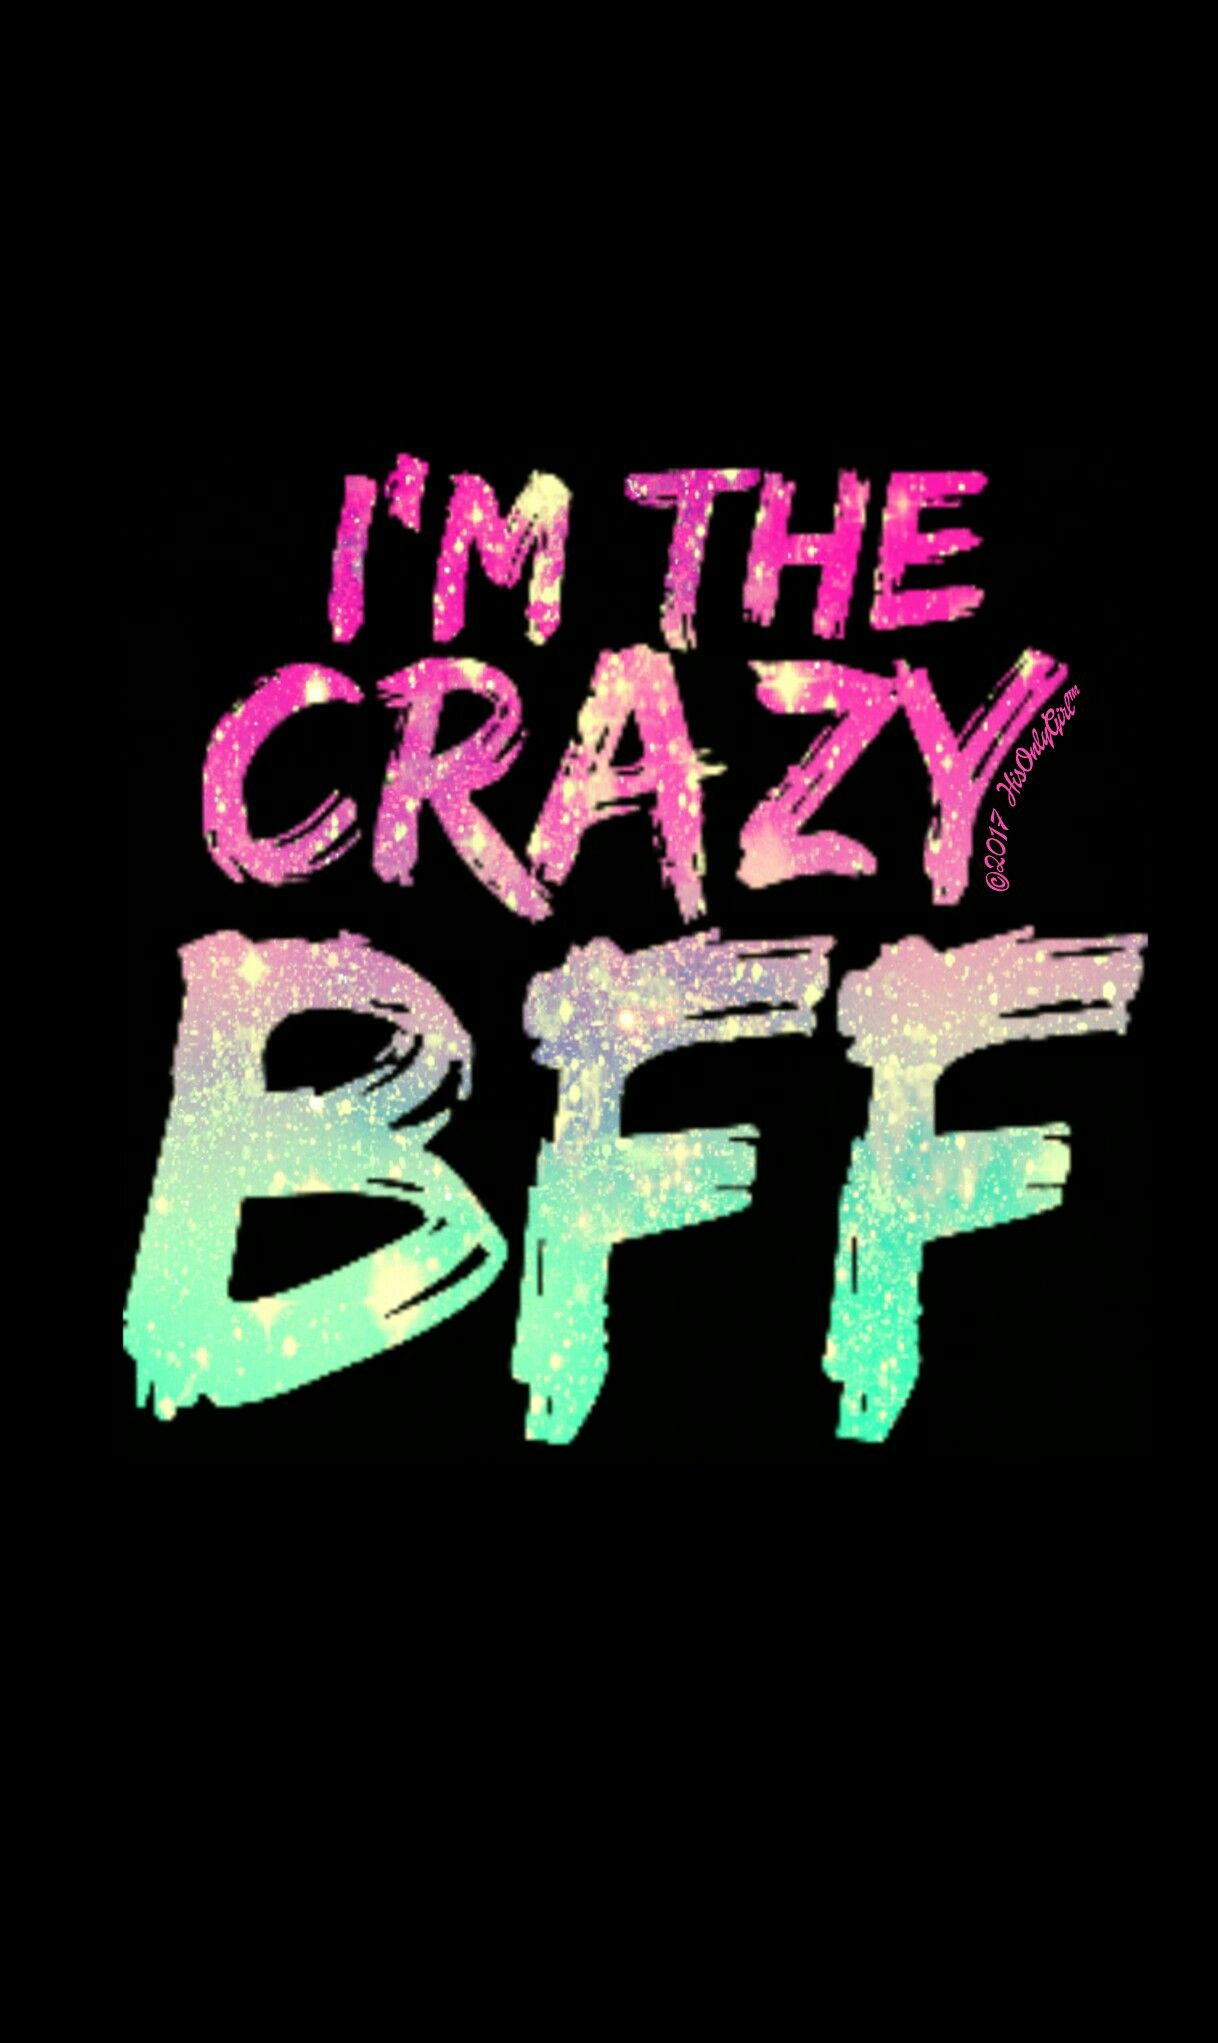 Crazy BFF galaxy wallpaper I created for the app CocoPPa